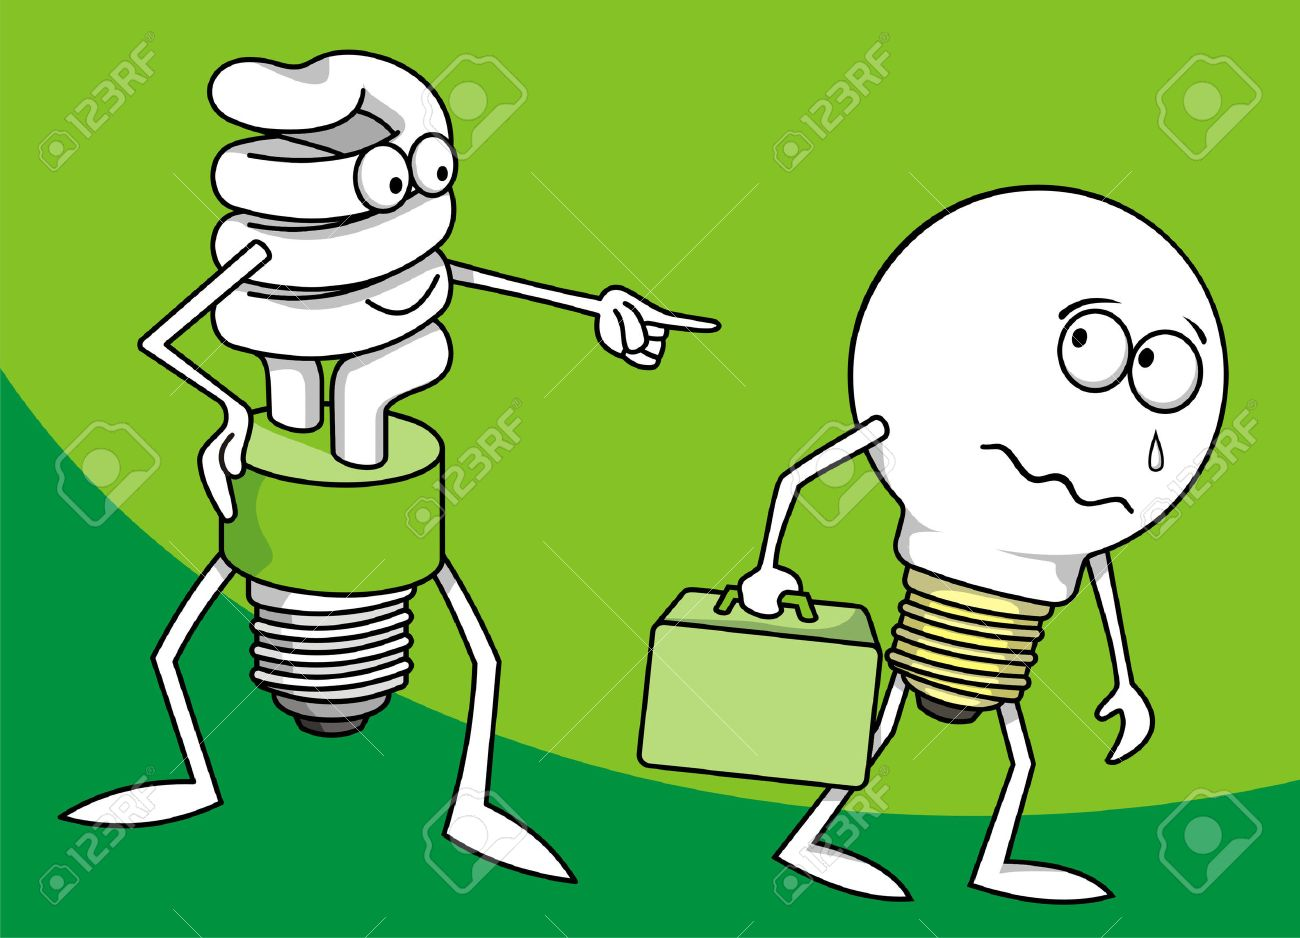 Incandescent light bulb persecuted by a fluorescent one Stock Vector - 2985975